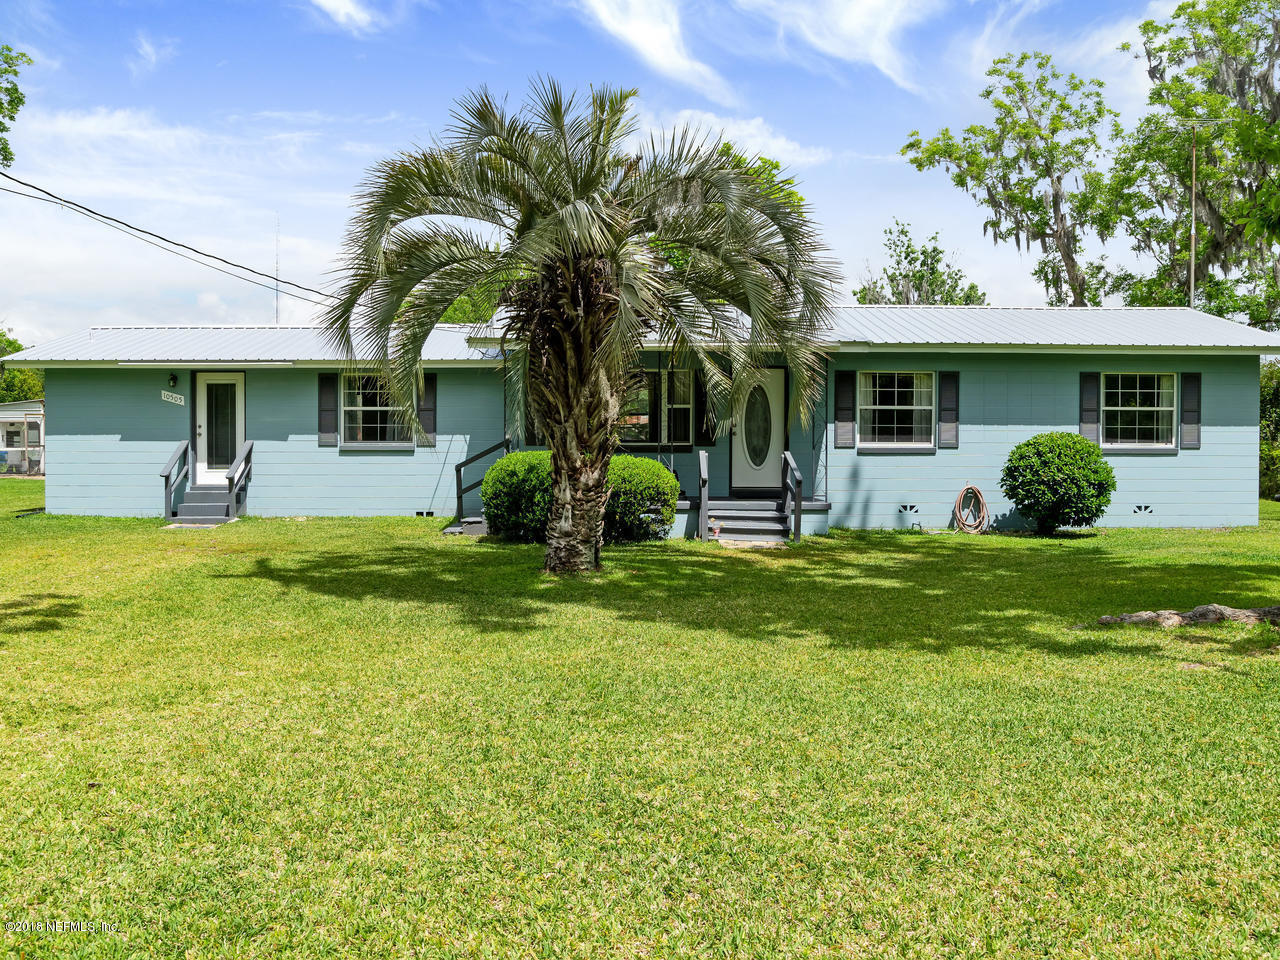 10505 49TH, STARKE, FLORIDA 32091, 4 Bedrooms Bedrooms, ,2 BathroomsBathrooms,Residential - single family,For sale,49TH,965000